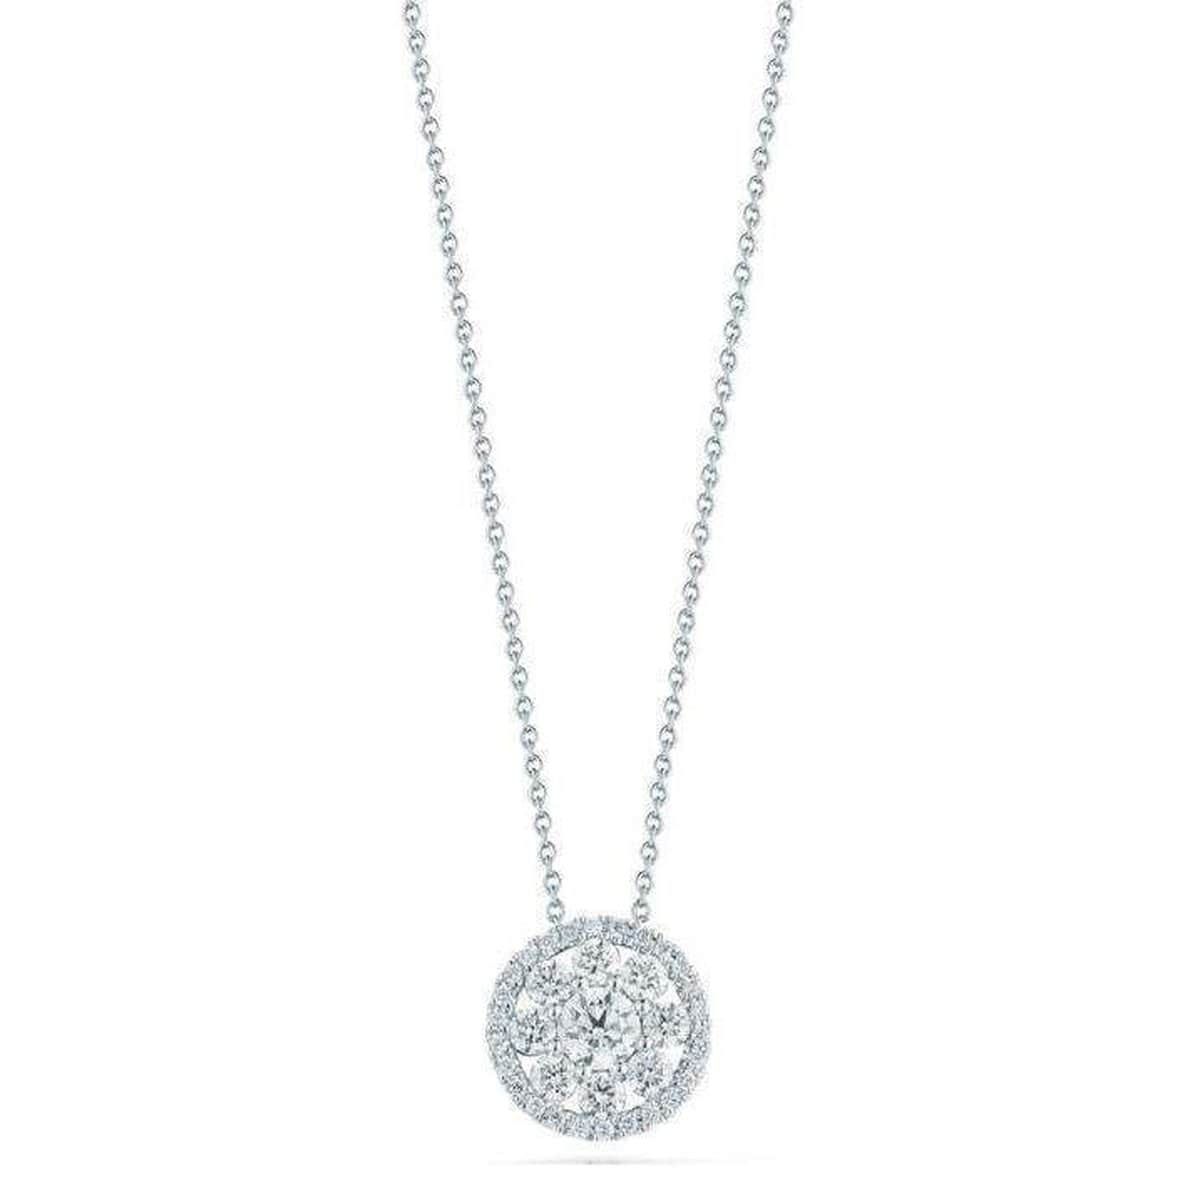 18k White Gold & Diamond Round Pendant Necklace - 519071AWCHX0-Roberto Coin-Renee Taylor Gallery